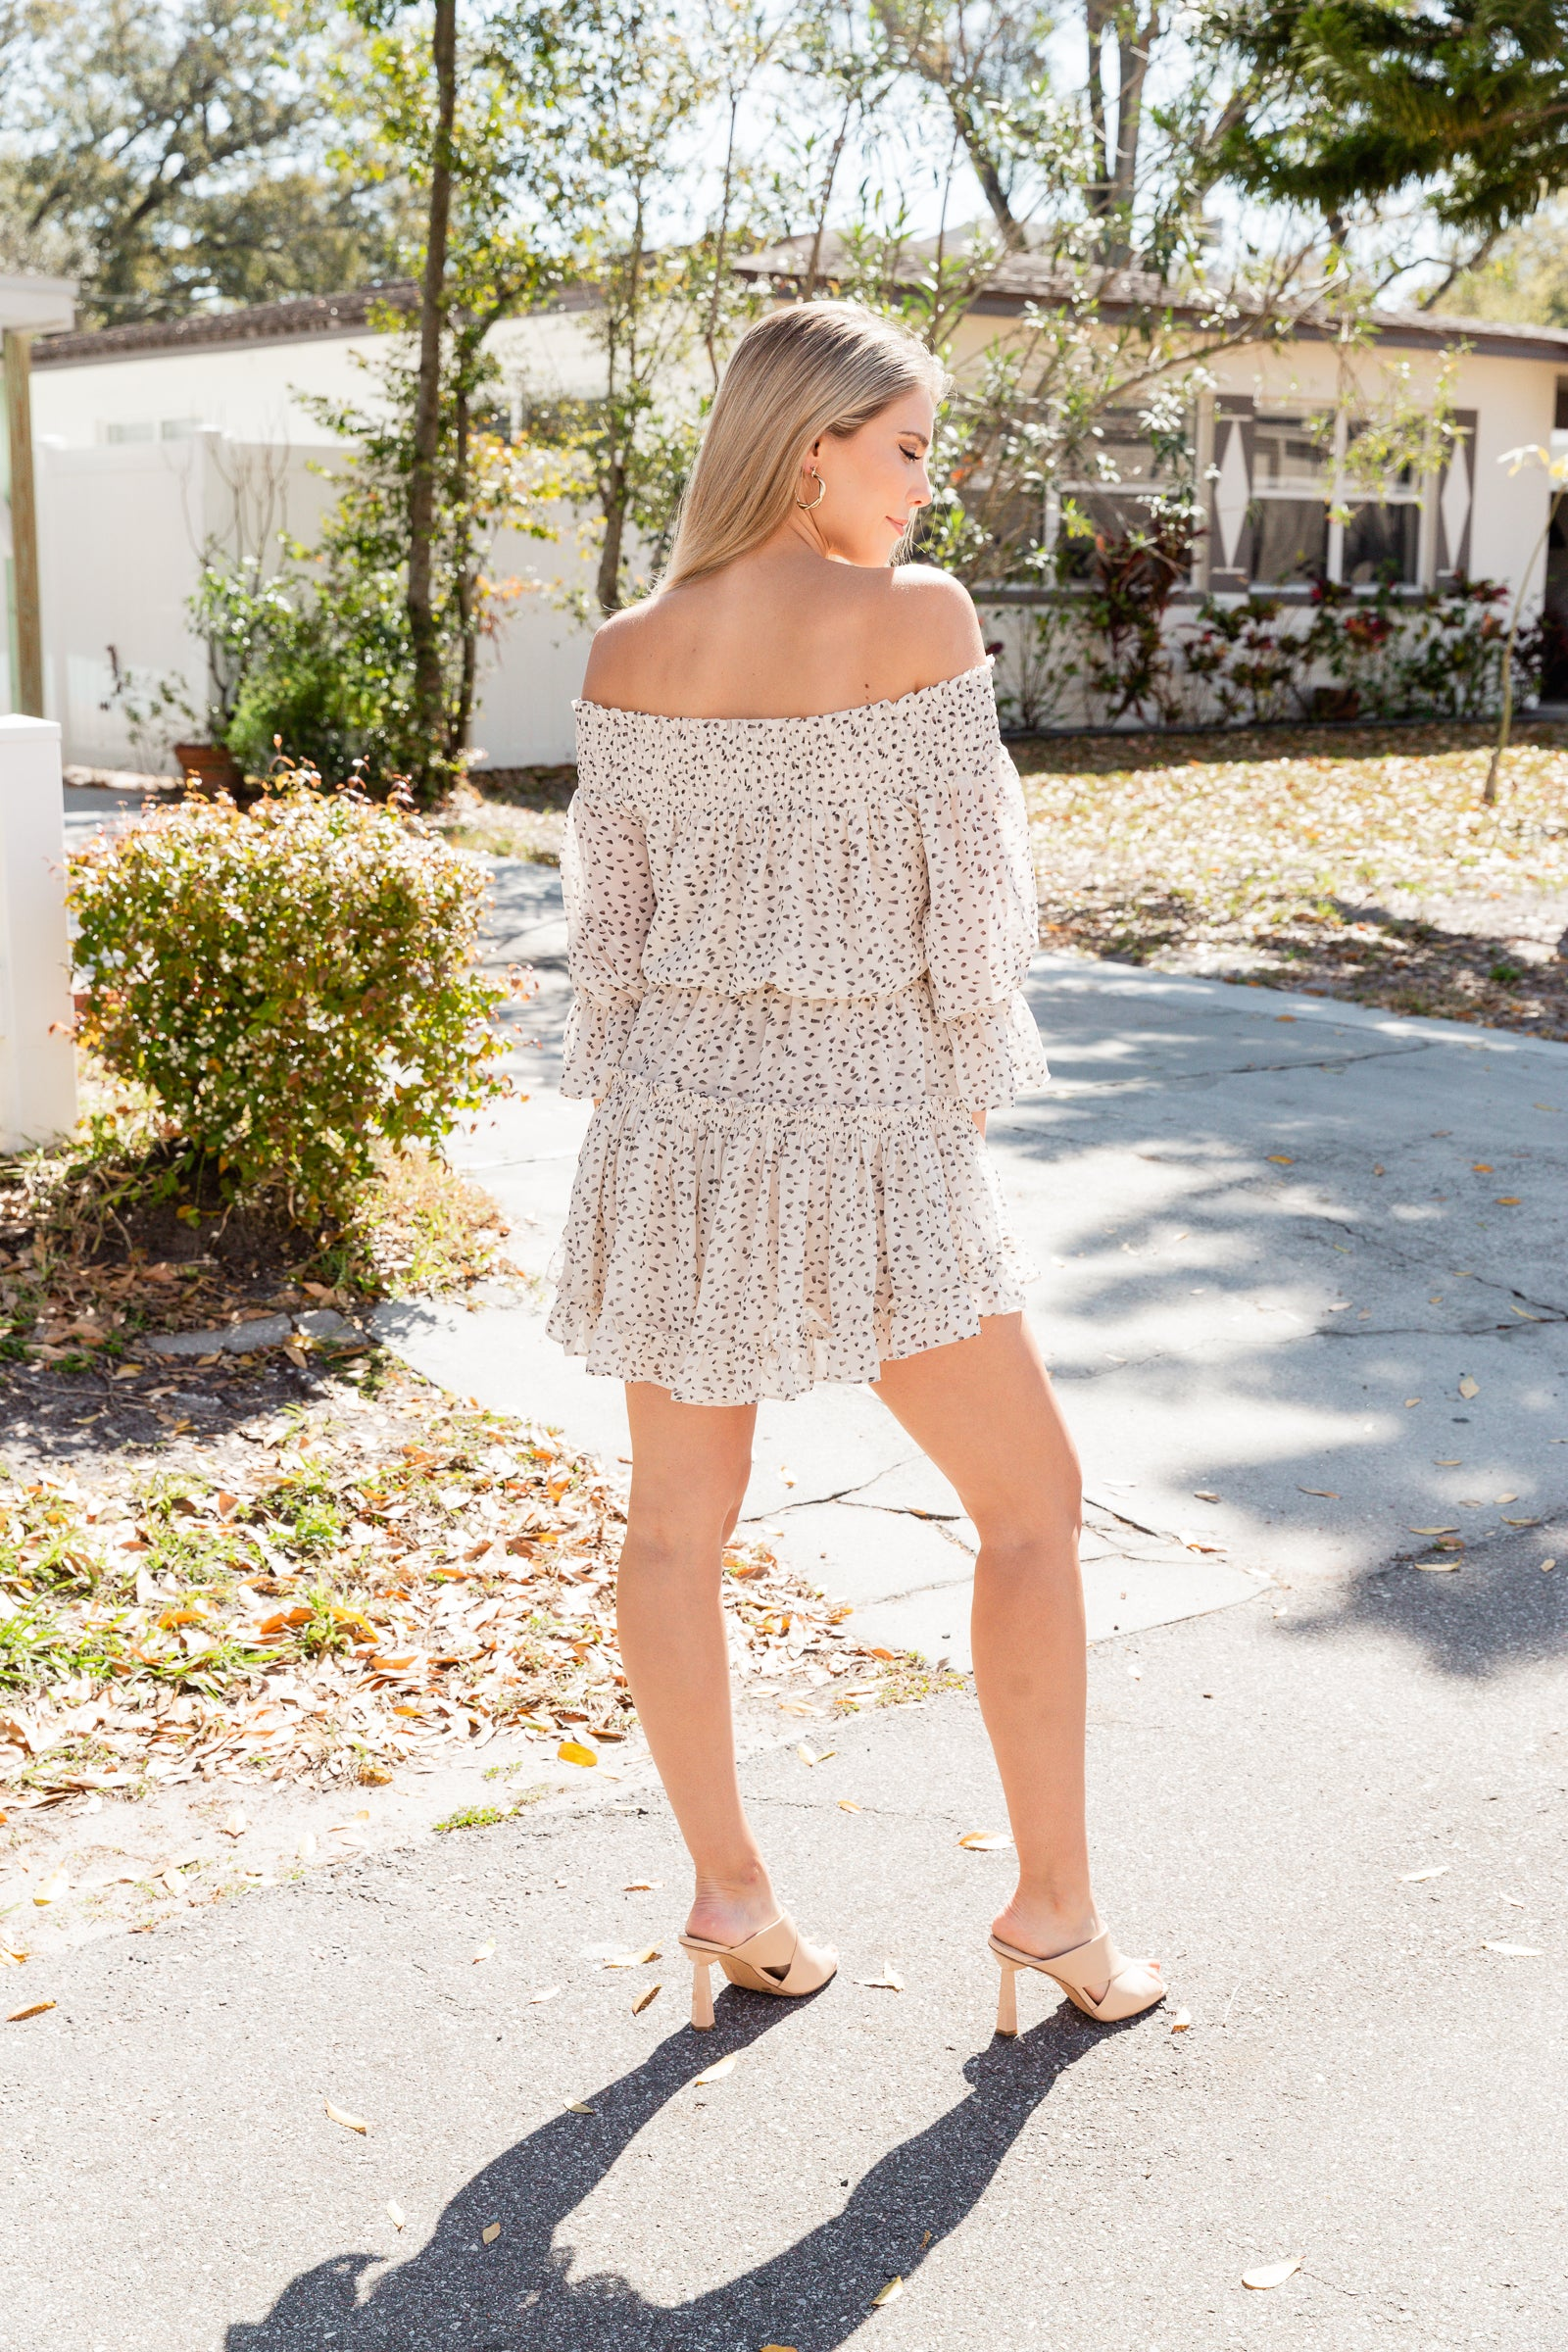 Mid-length ruffle cuffed sleeves attach to an off-the-shoulder and straight neckline that is smocked with a relaxed bodice meets an elastic waistband before going into a tiered ruffle mini skirt.